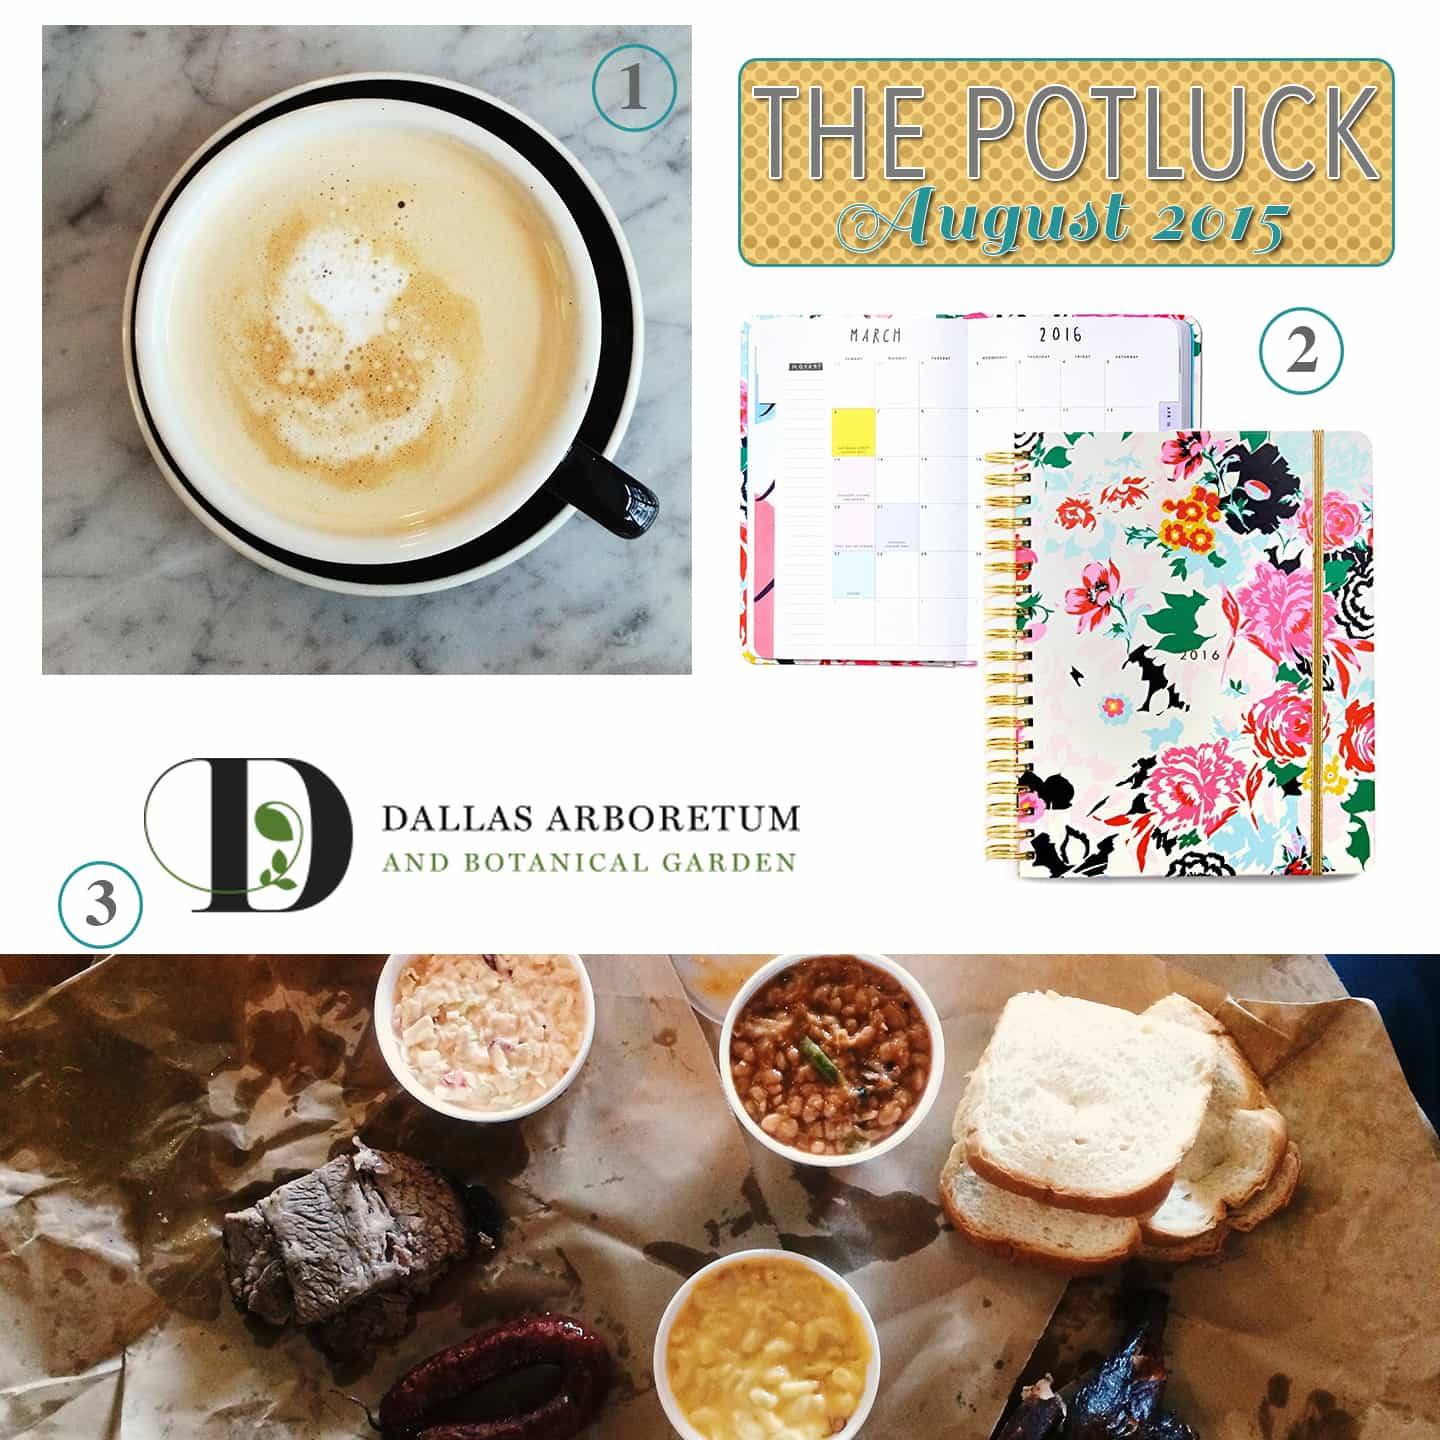 The Potluck: August 2015